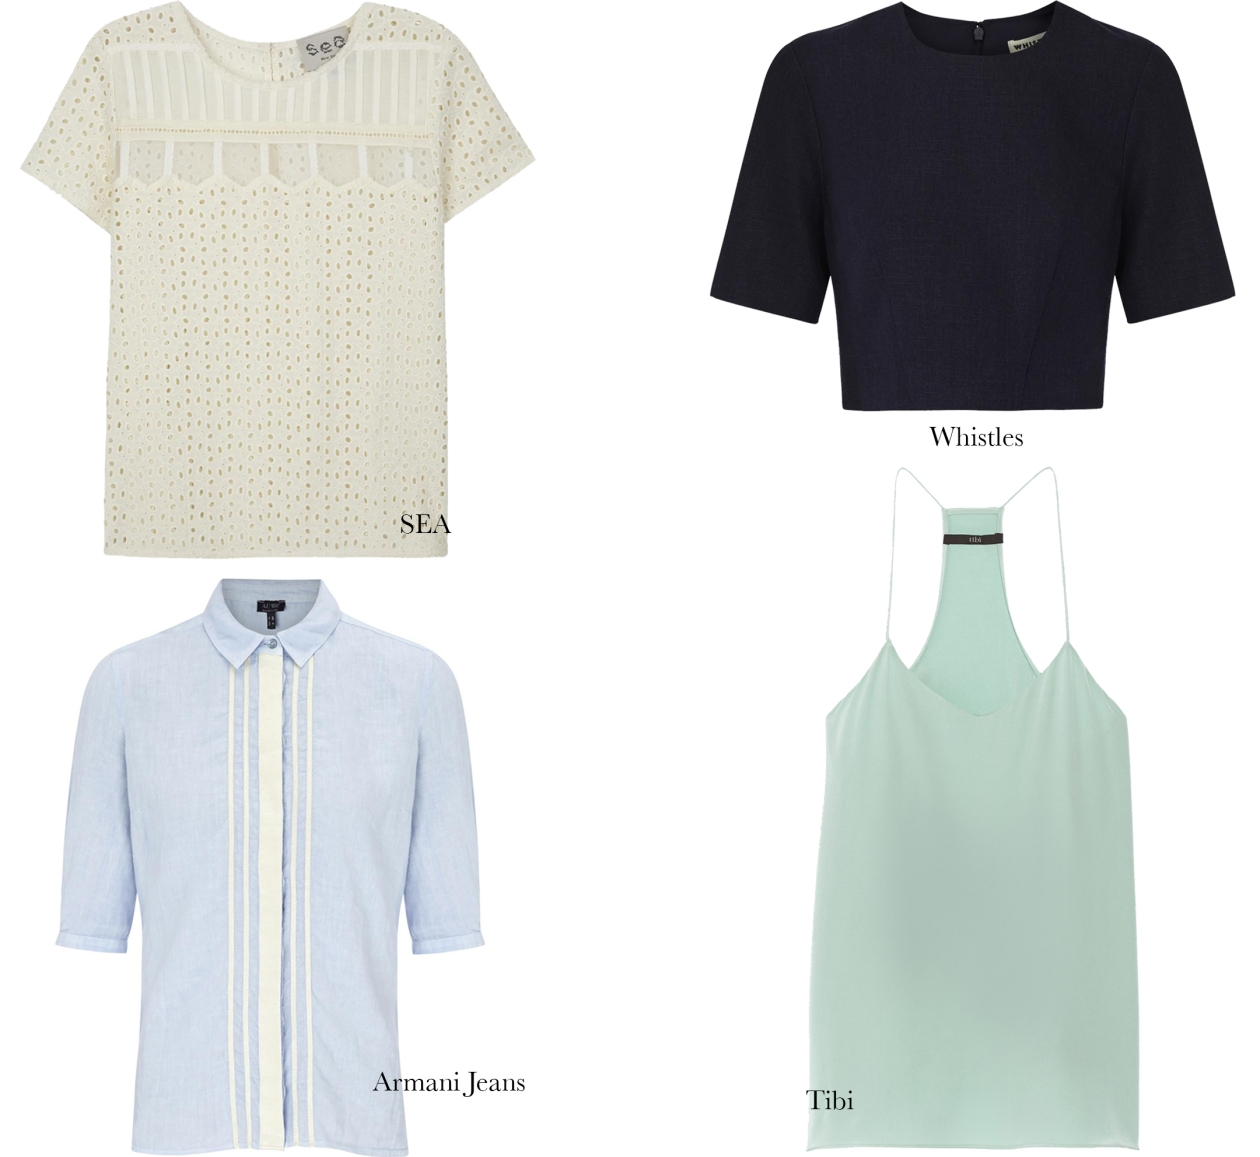 The Summer Wardrobe- Tops